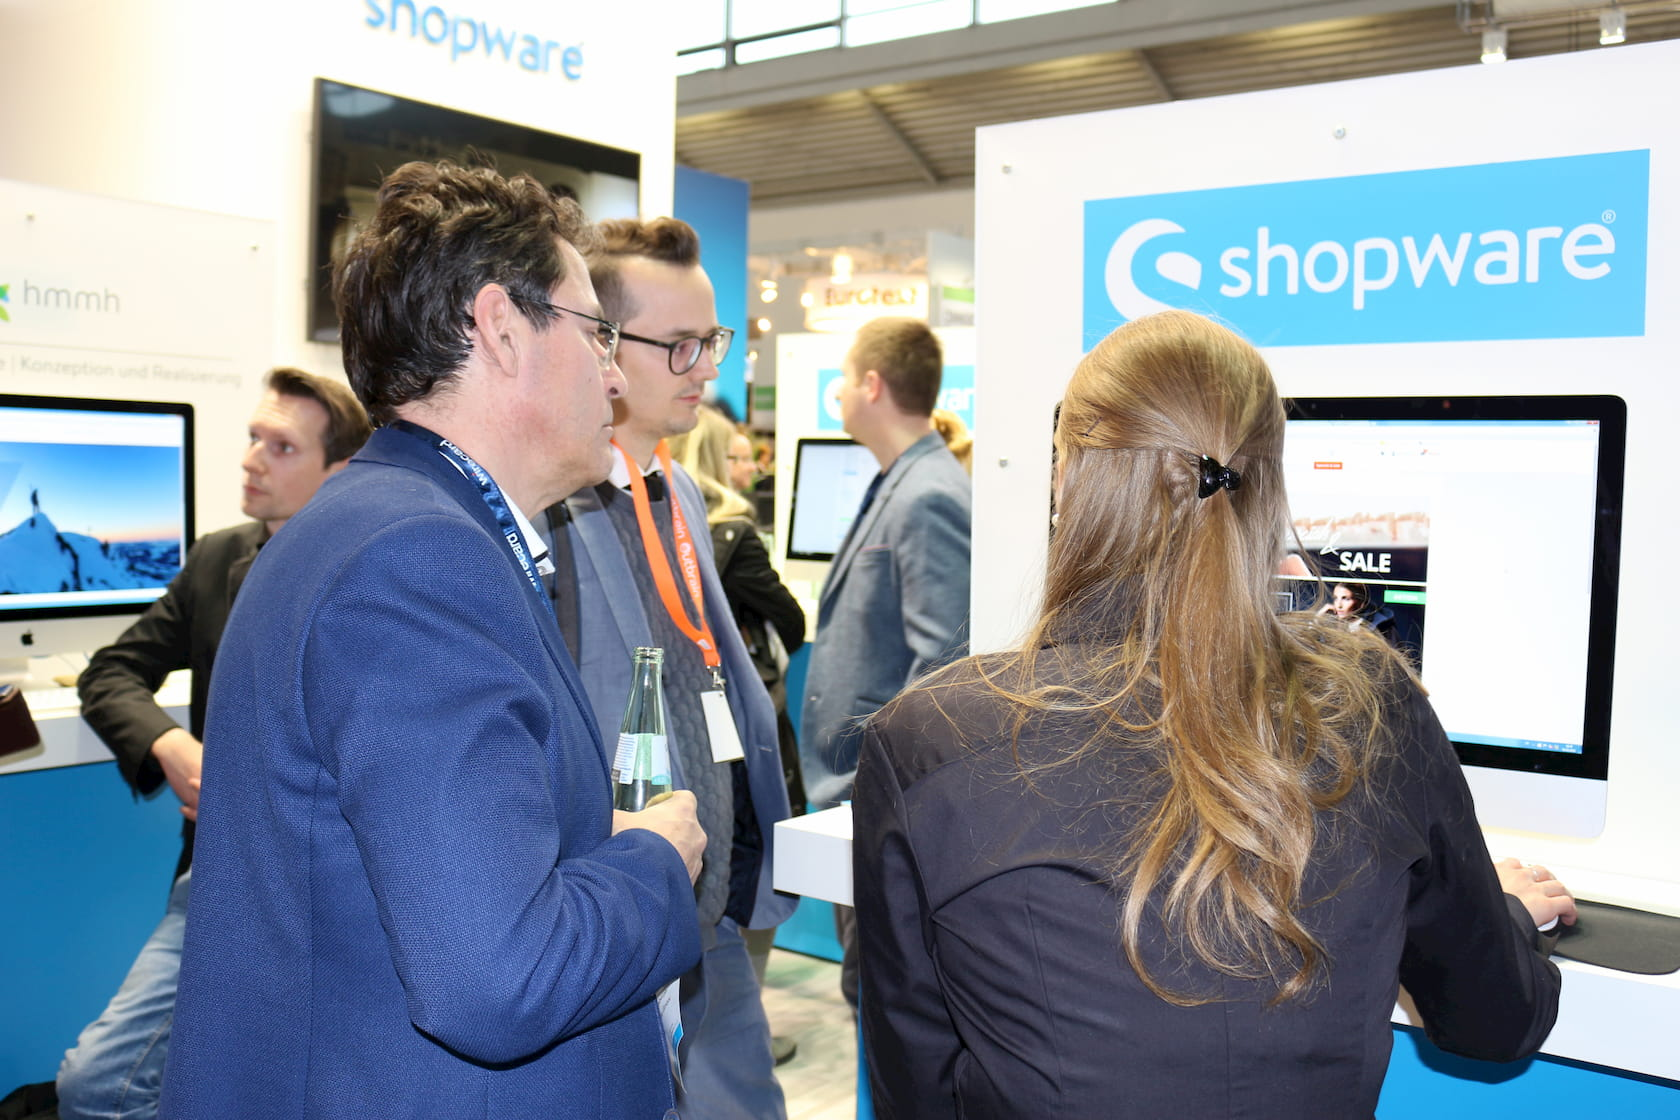 Shopware-Stand-Internet-World